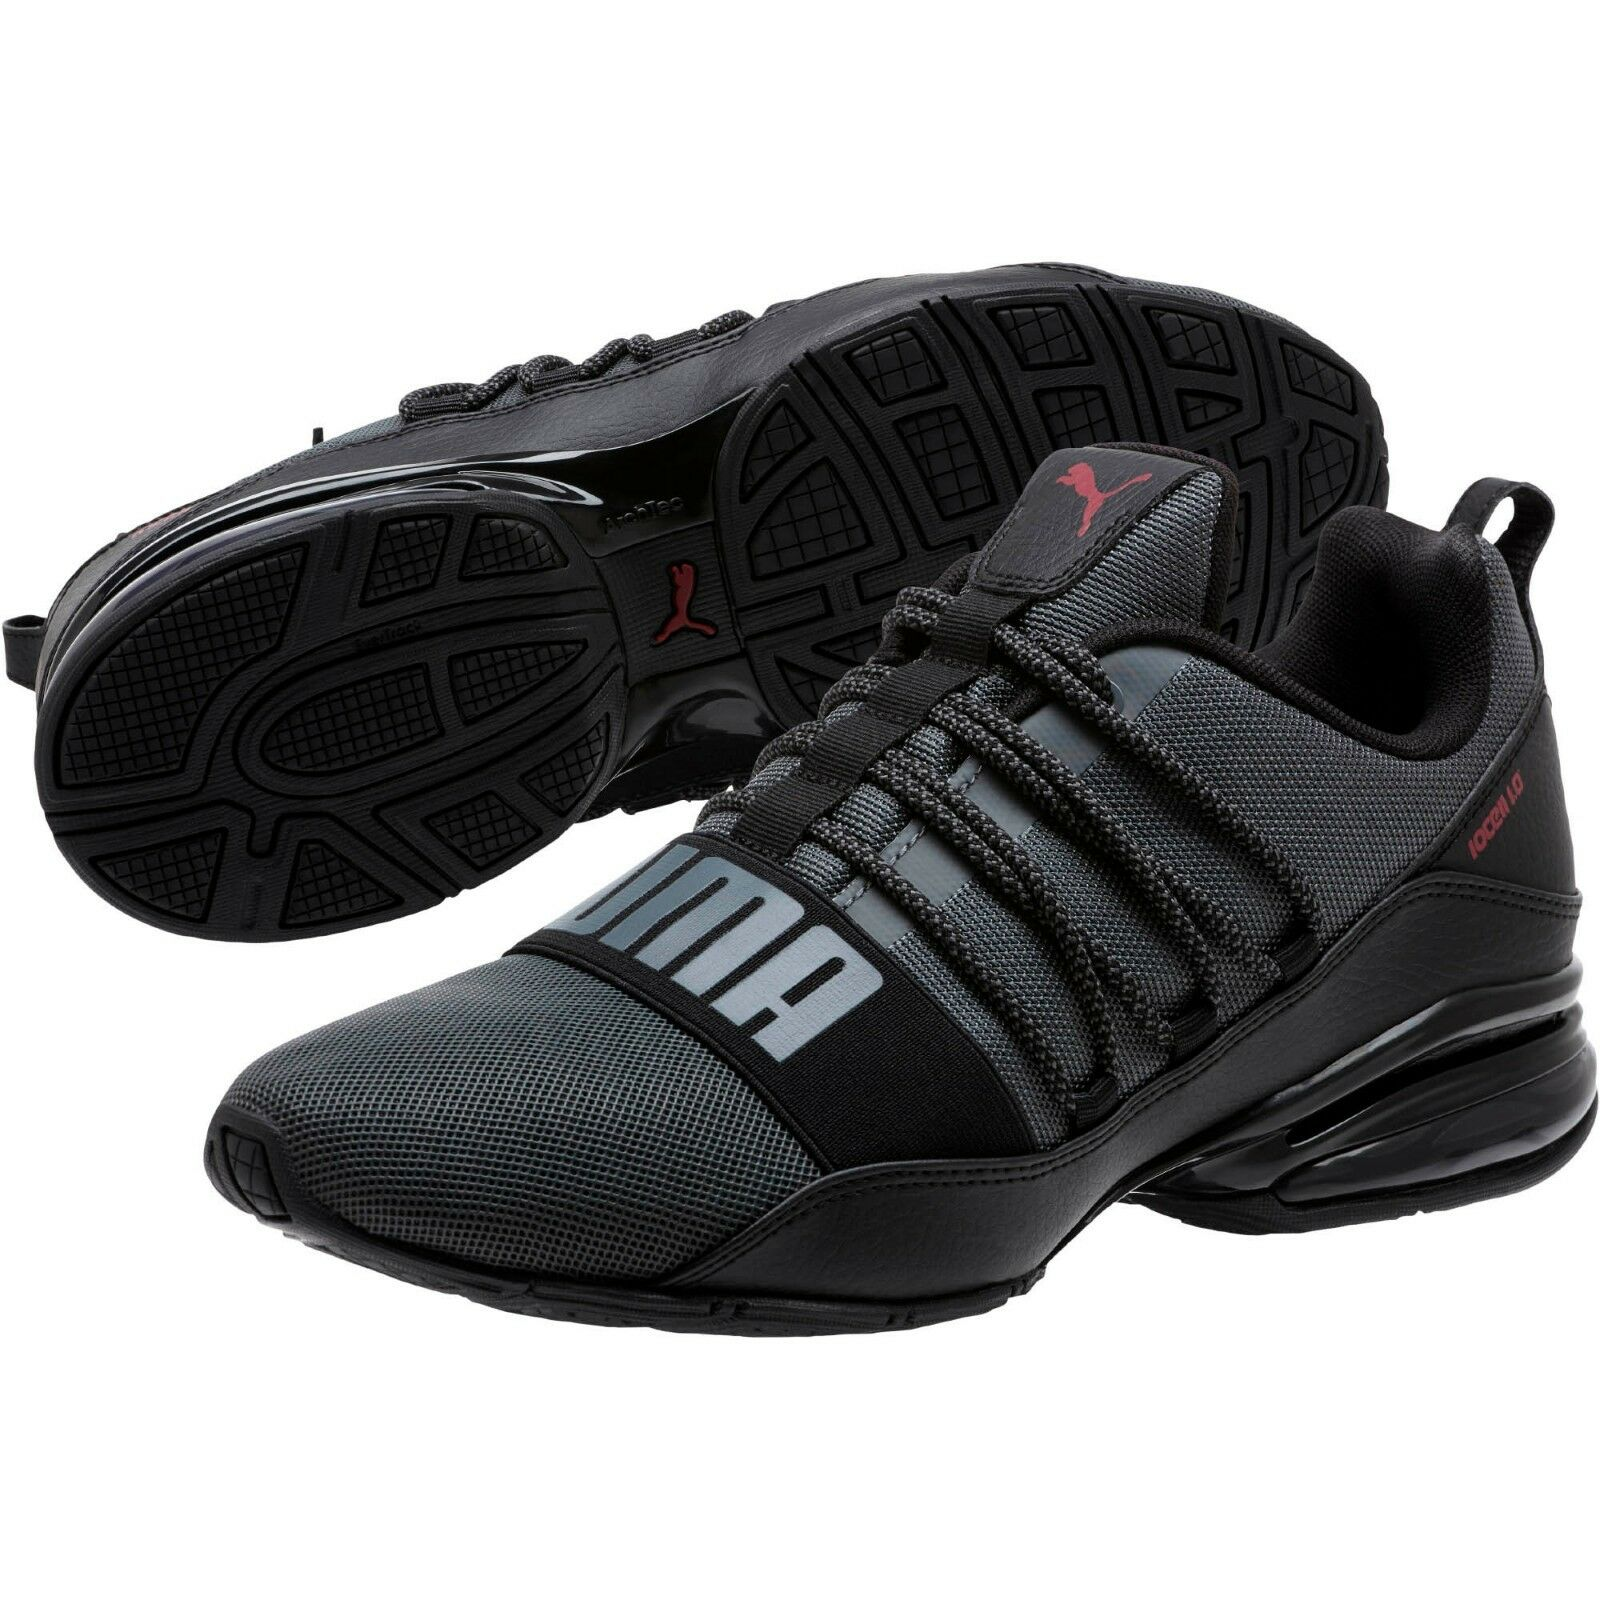 Nwt hombres puma cell surin zapatos smell krm t bowl 190379 _ 03